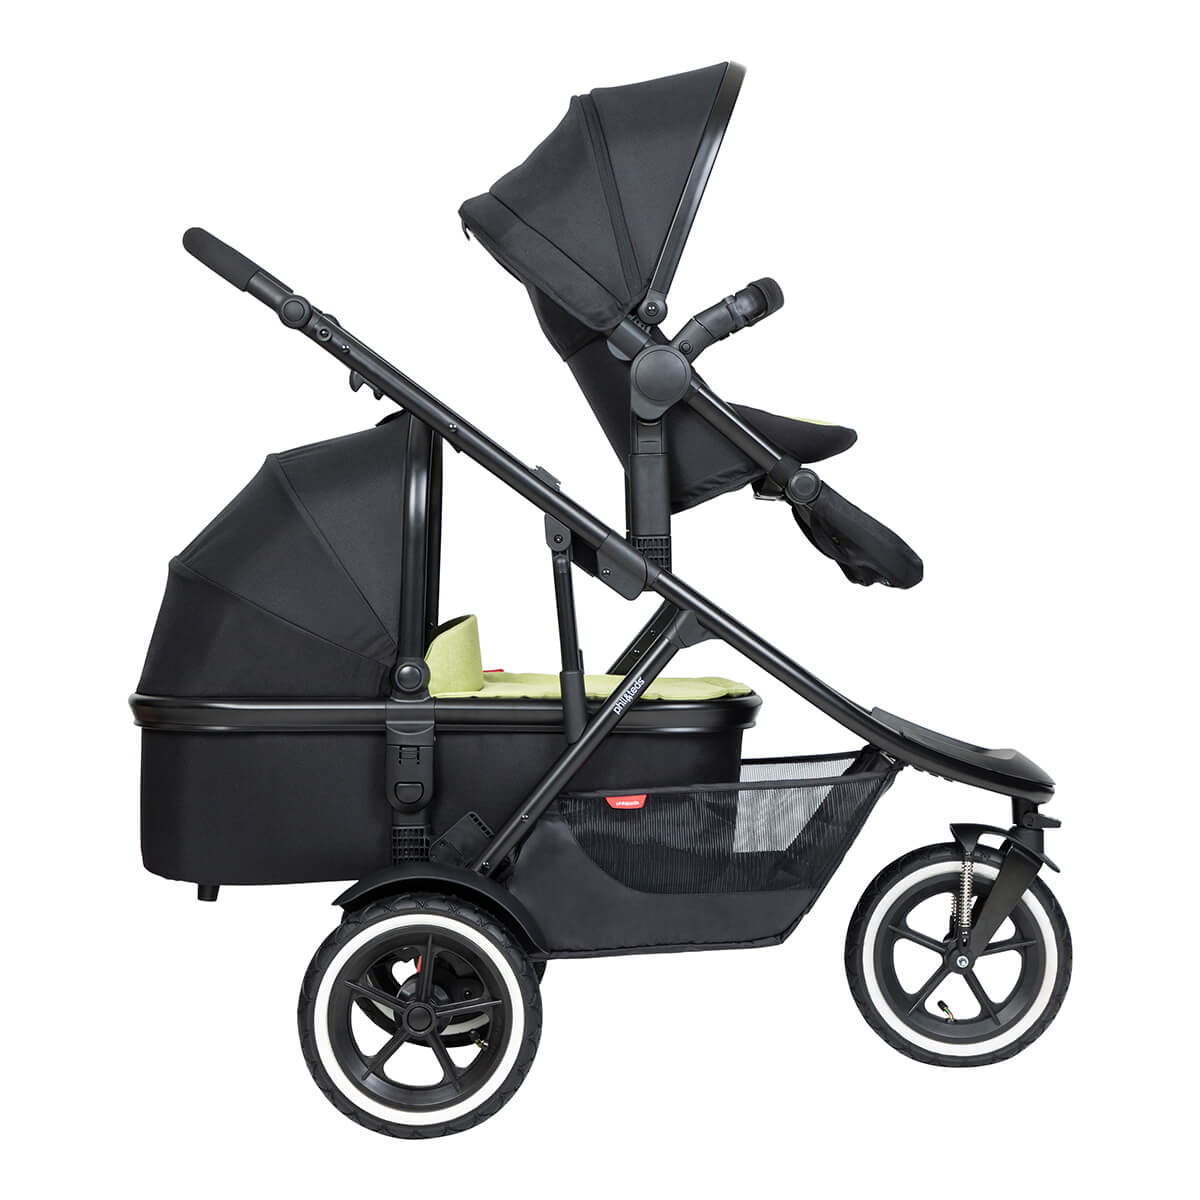 https://cdn.accentuate.io/4509867278433/19793939726506/philteds-sport-buggy-with-double-kit-extended-clip-and-snug-carrycot-side-view-v1626485276171.jpg?1200x1200